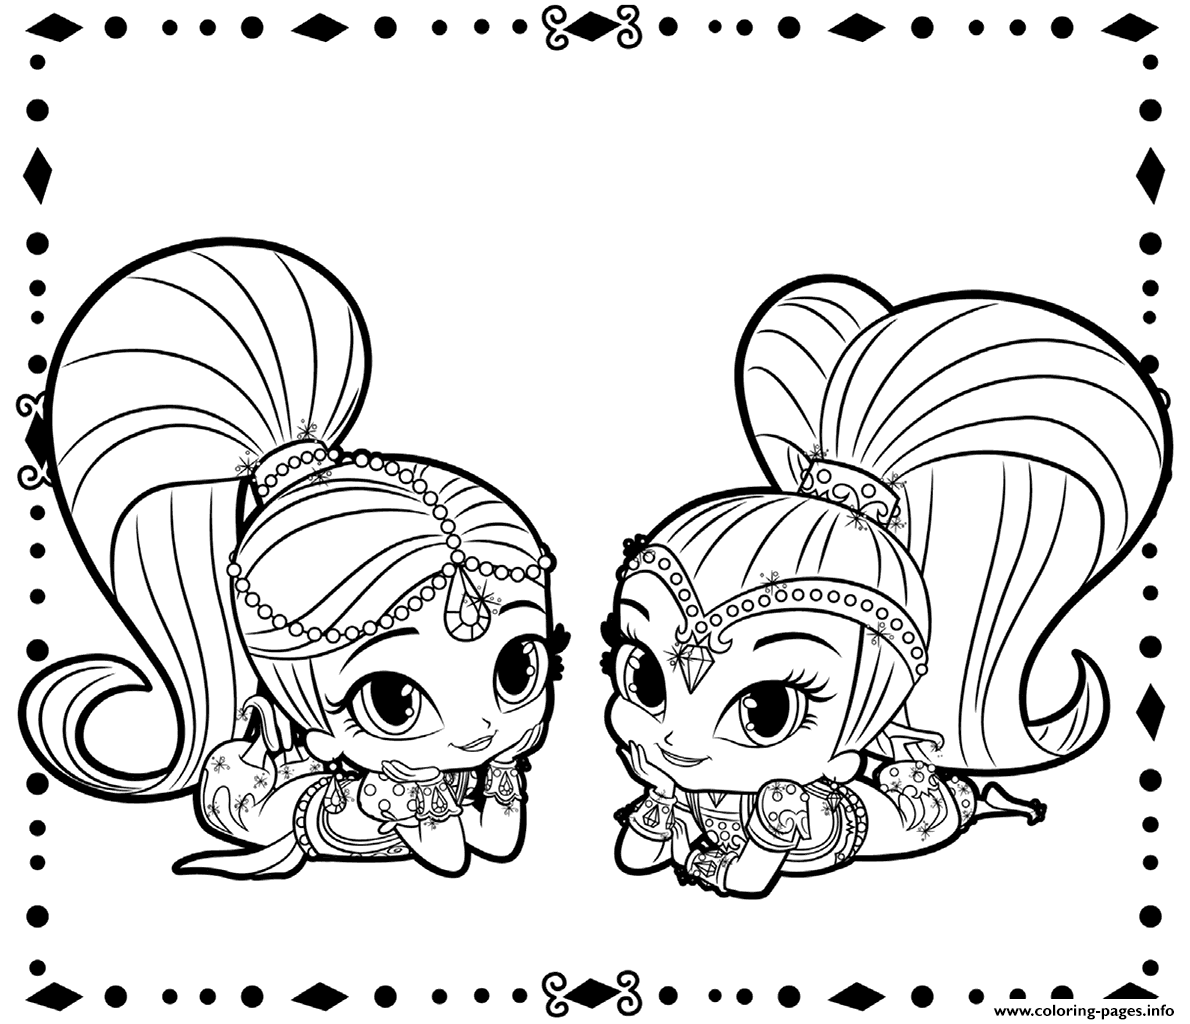 Print Shimmer and Shine coloring pages | Shimmer and Shine ...